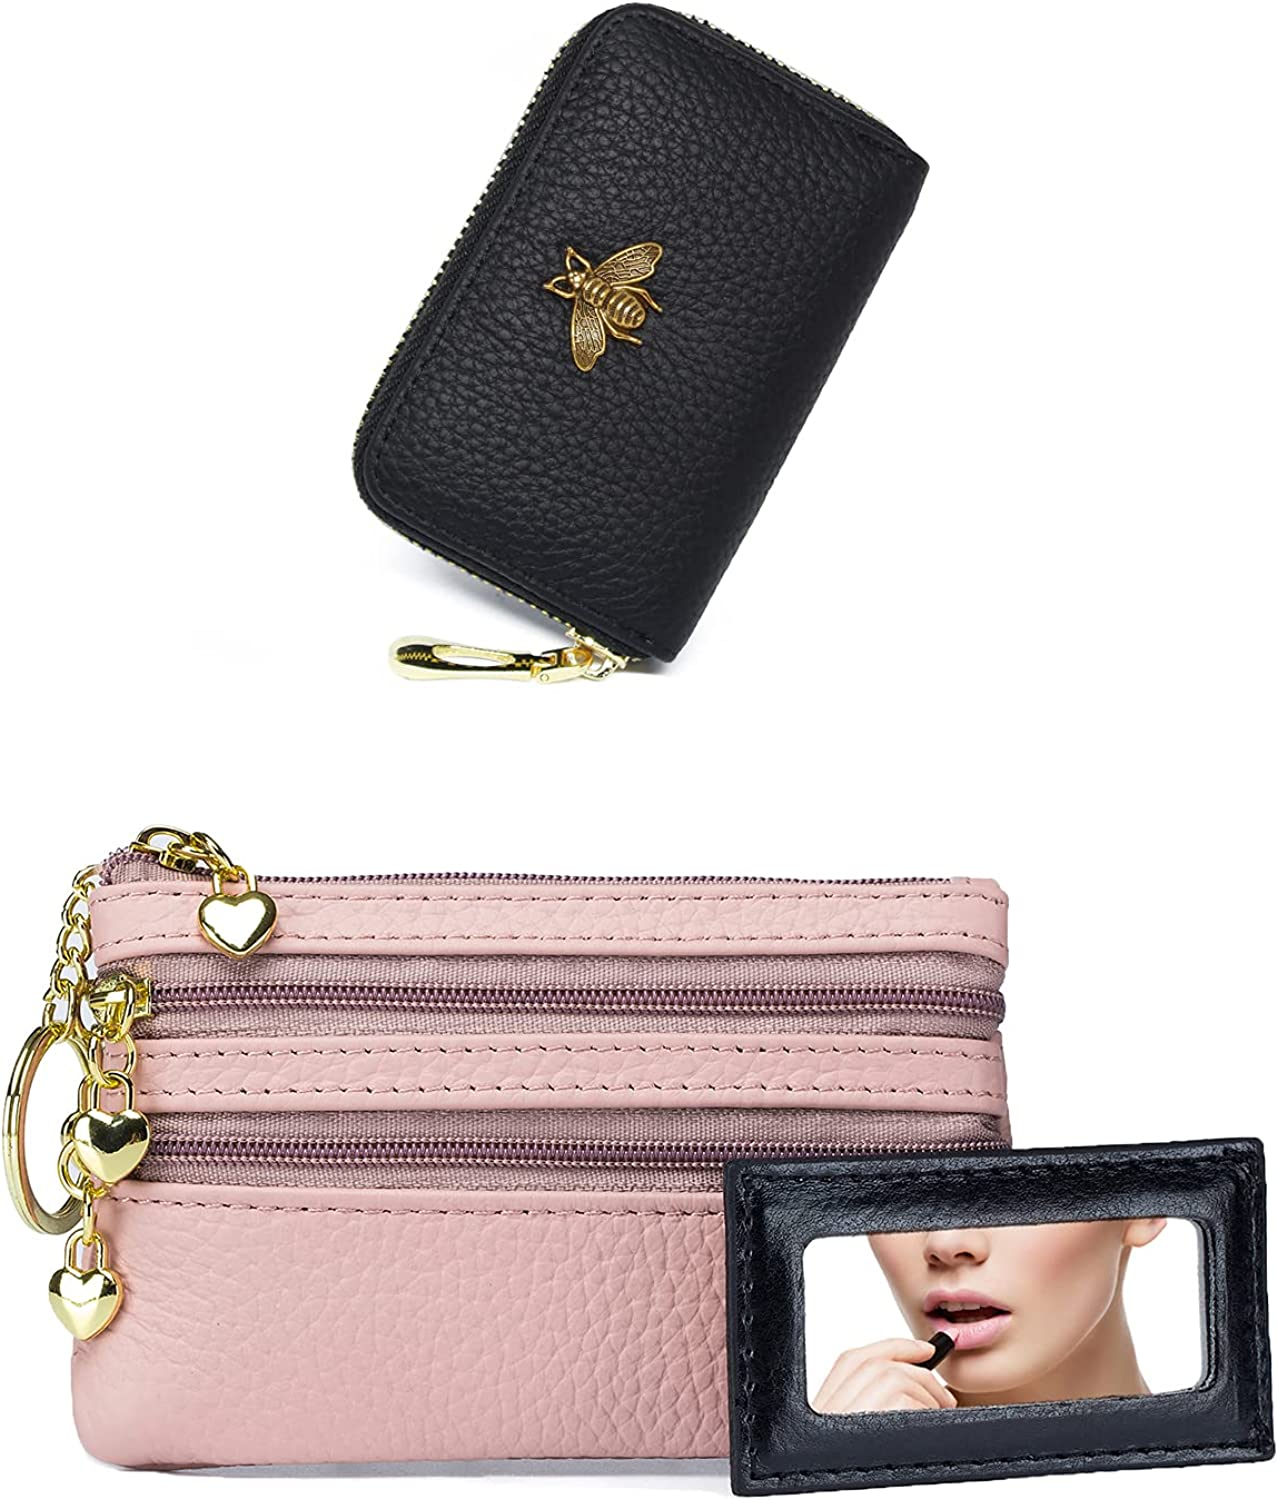 (Bundle of 2 Sets) imeetu Small Credit Card Holder and Coin Pouch Wallet